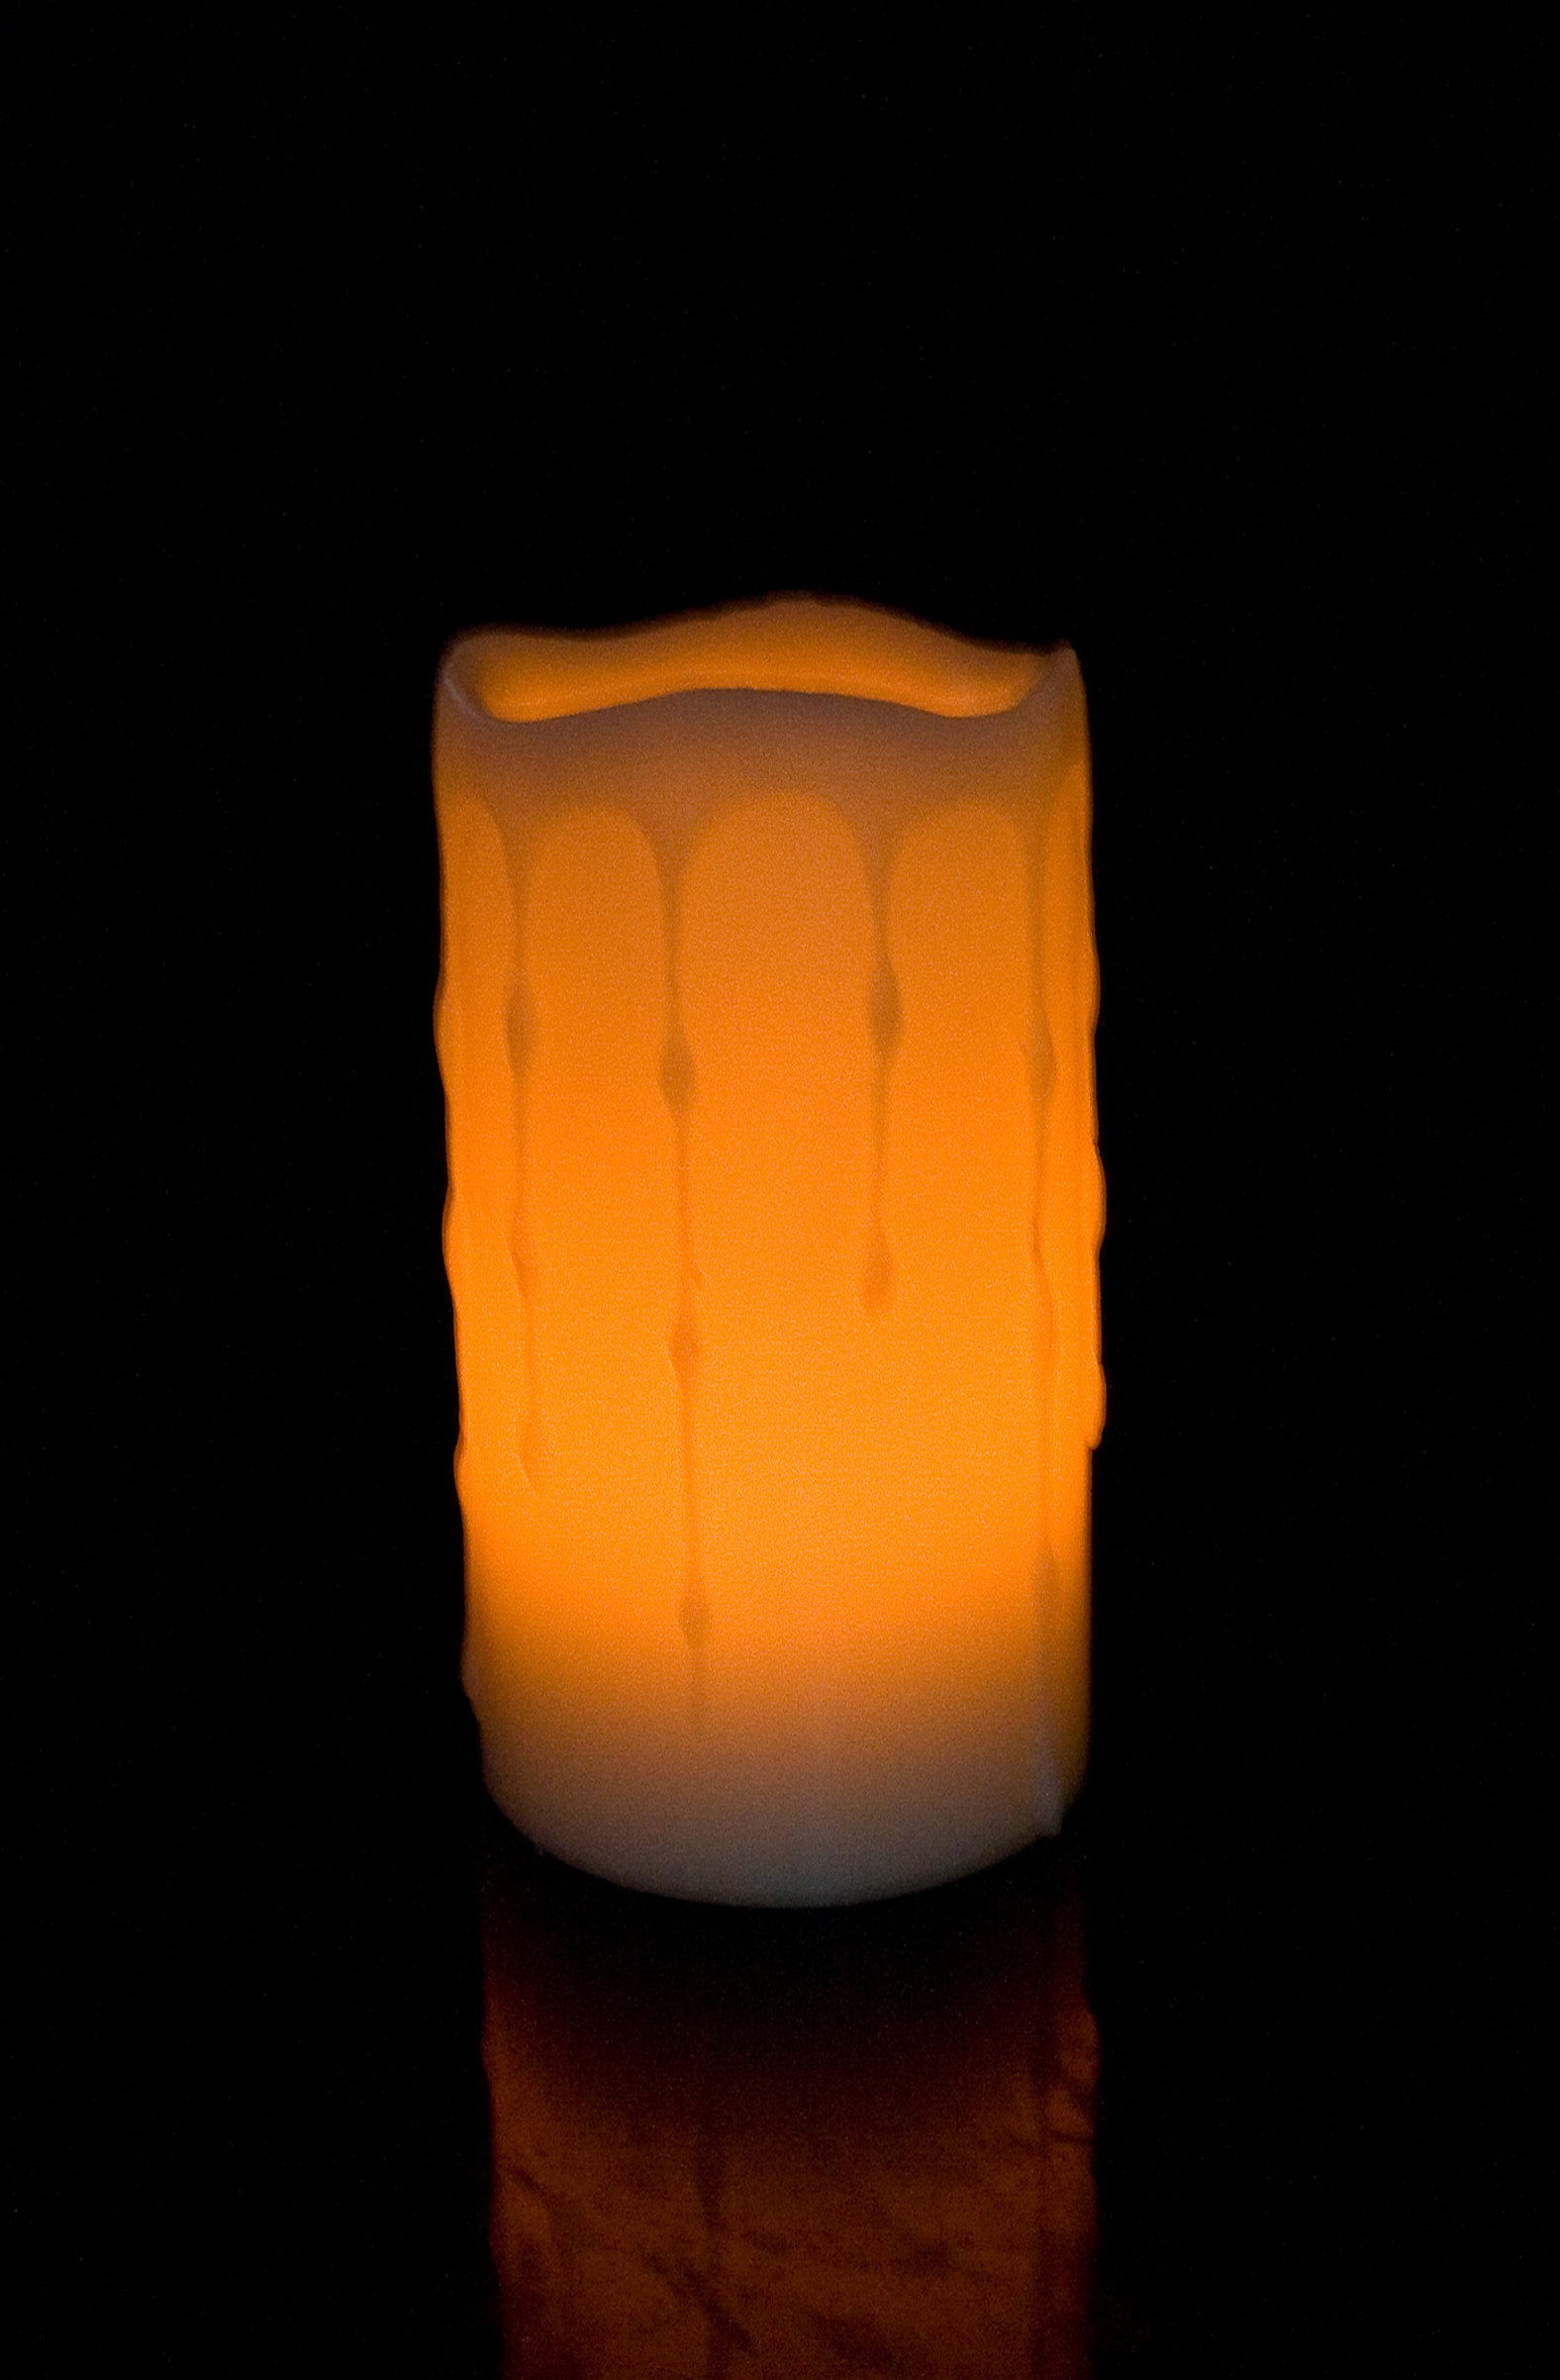 4-5-6 Inch Variety Pack Flameless Remote Control Pillar Candles - Smooth Edge - Multicolor